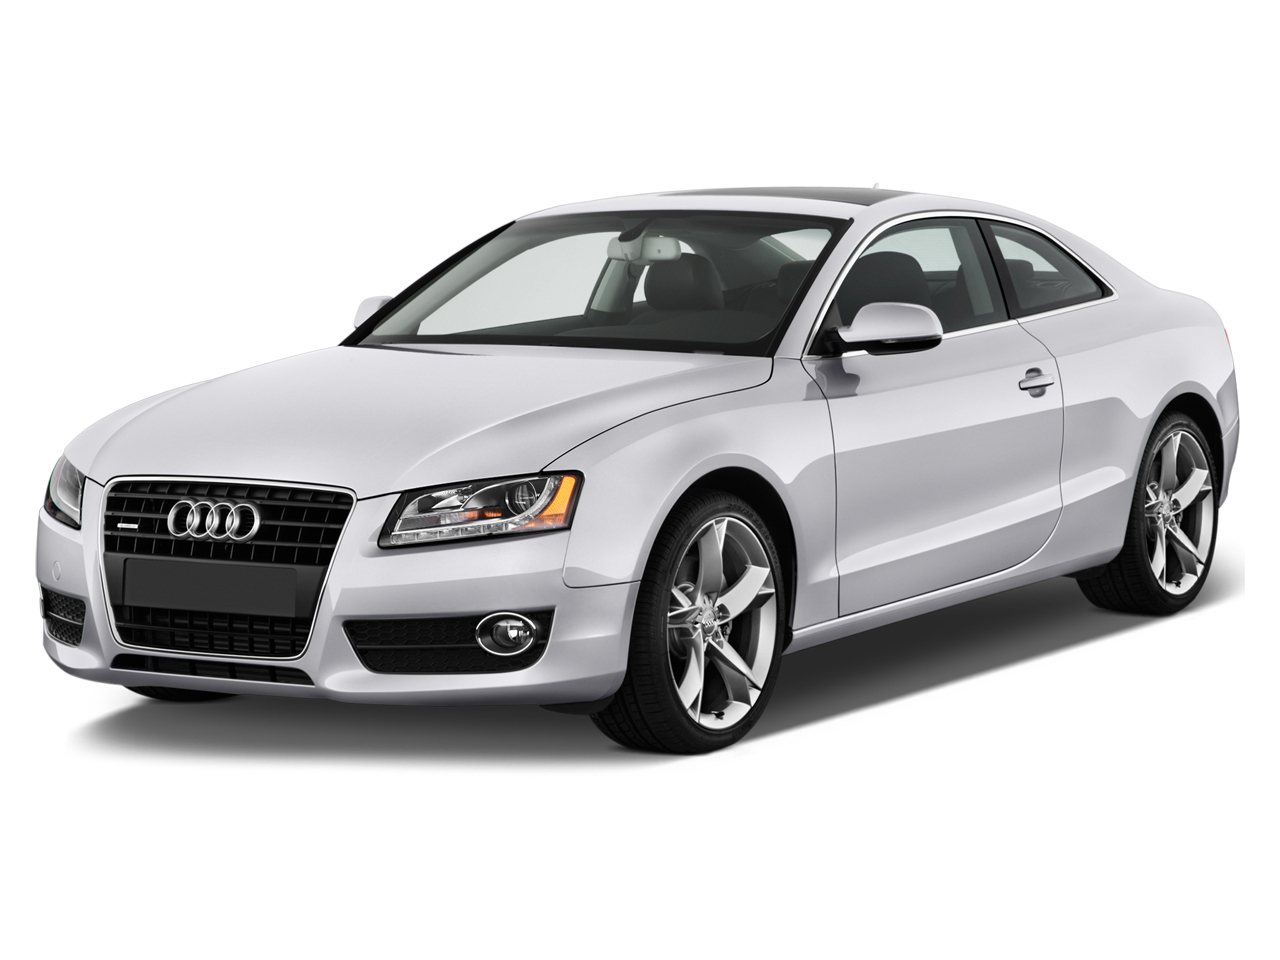 2011 Audi A5 Coupe Coupe 2-door